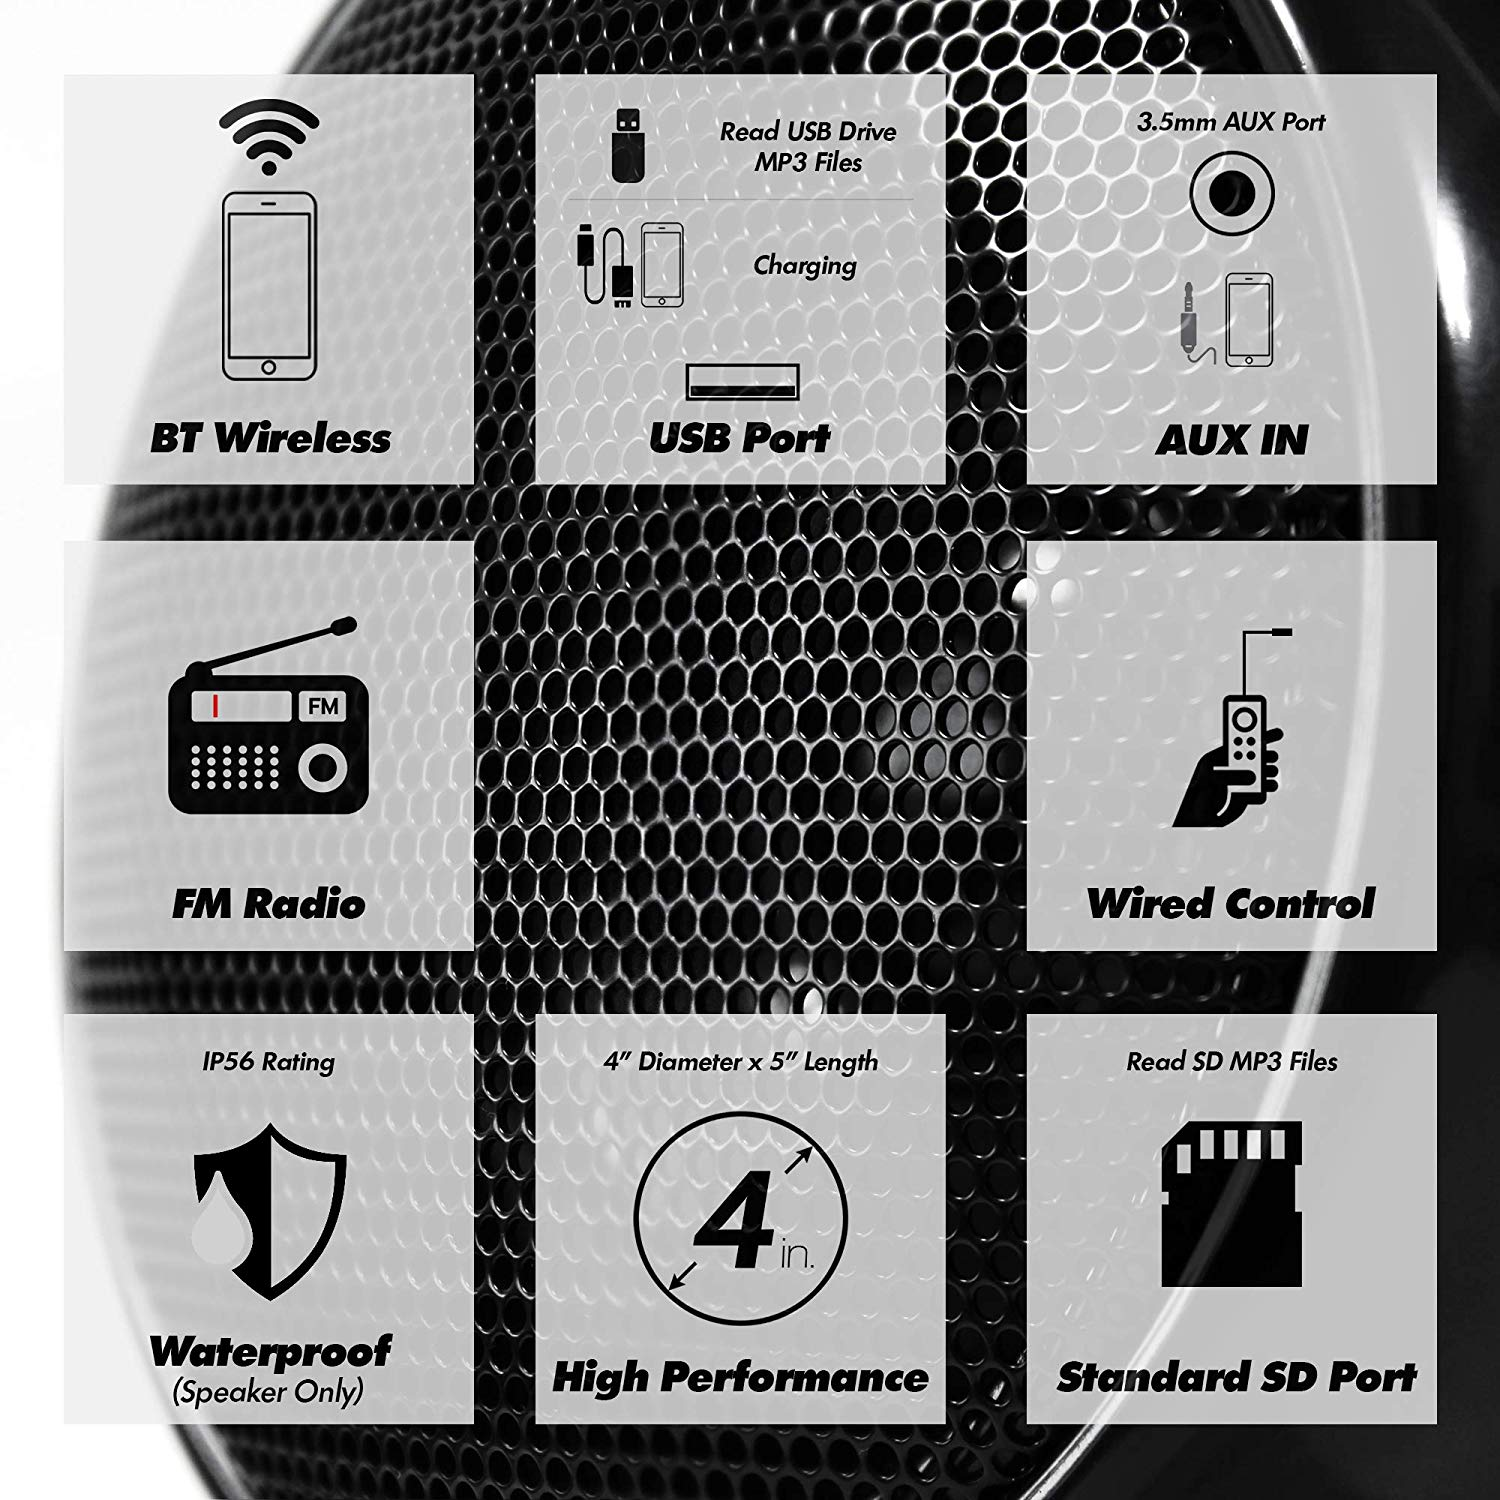 Image 3 - Aileap 1000W Motorcycle Audio 4 Channel Amplifier Speakers System, Support Bluetooth, AUX, FM Radio, SD Card, USB Stick (Black)Motorcycle Audio   -